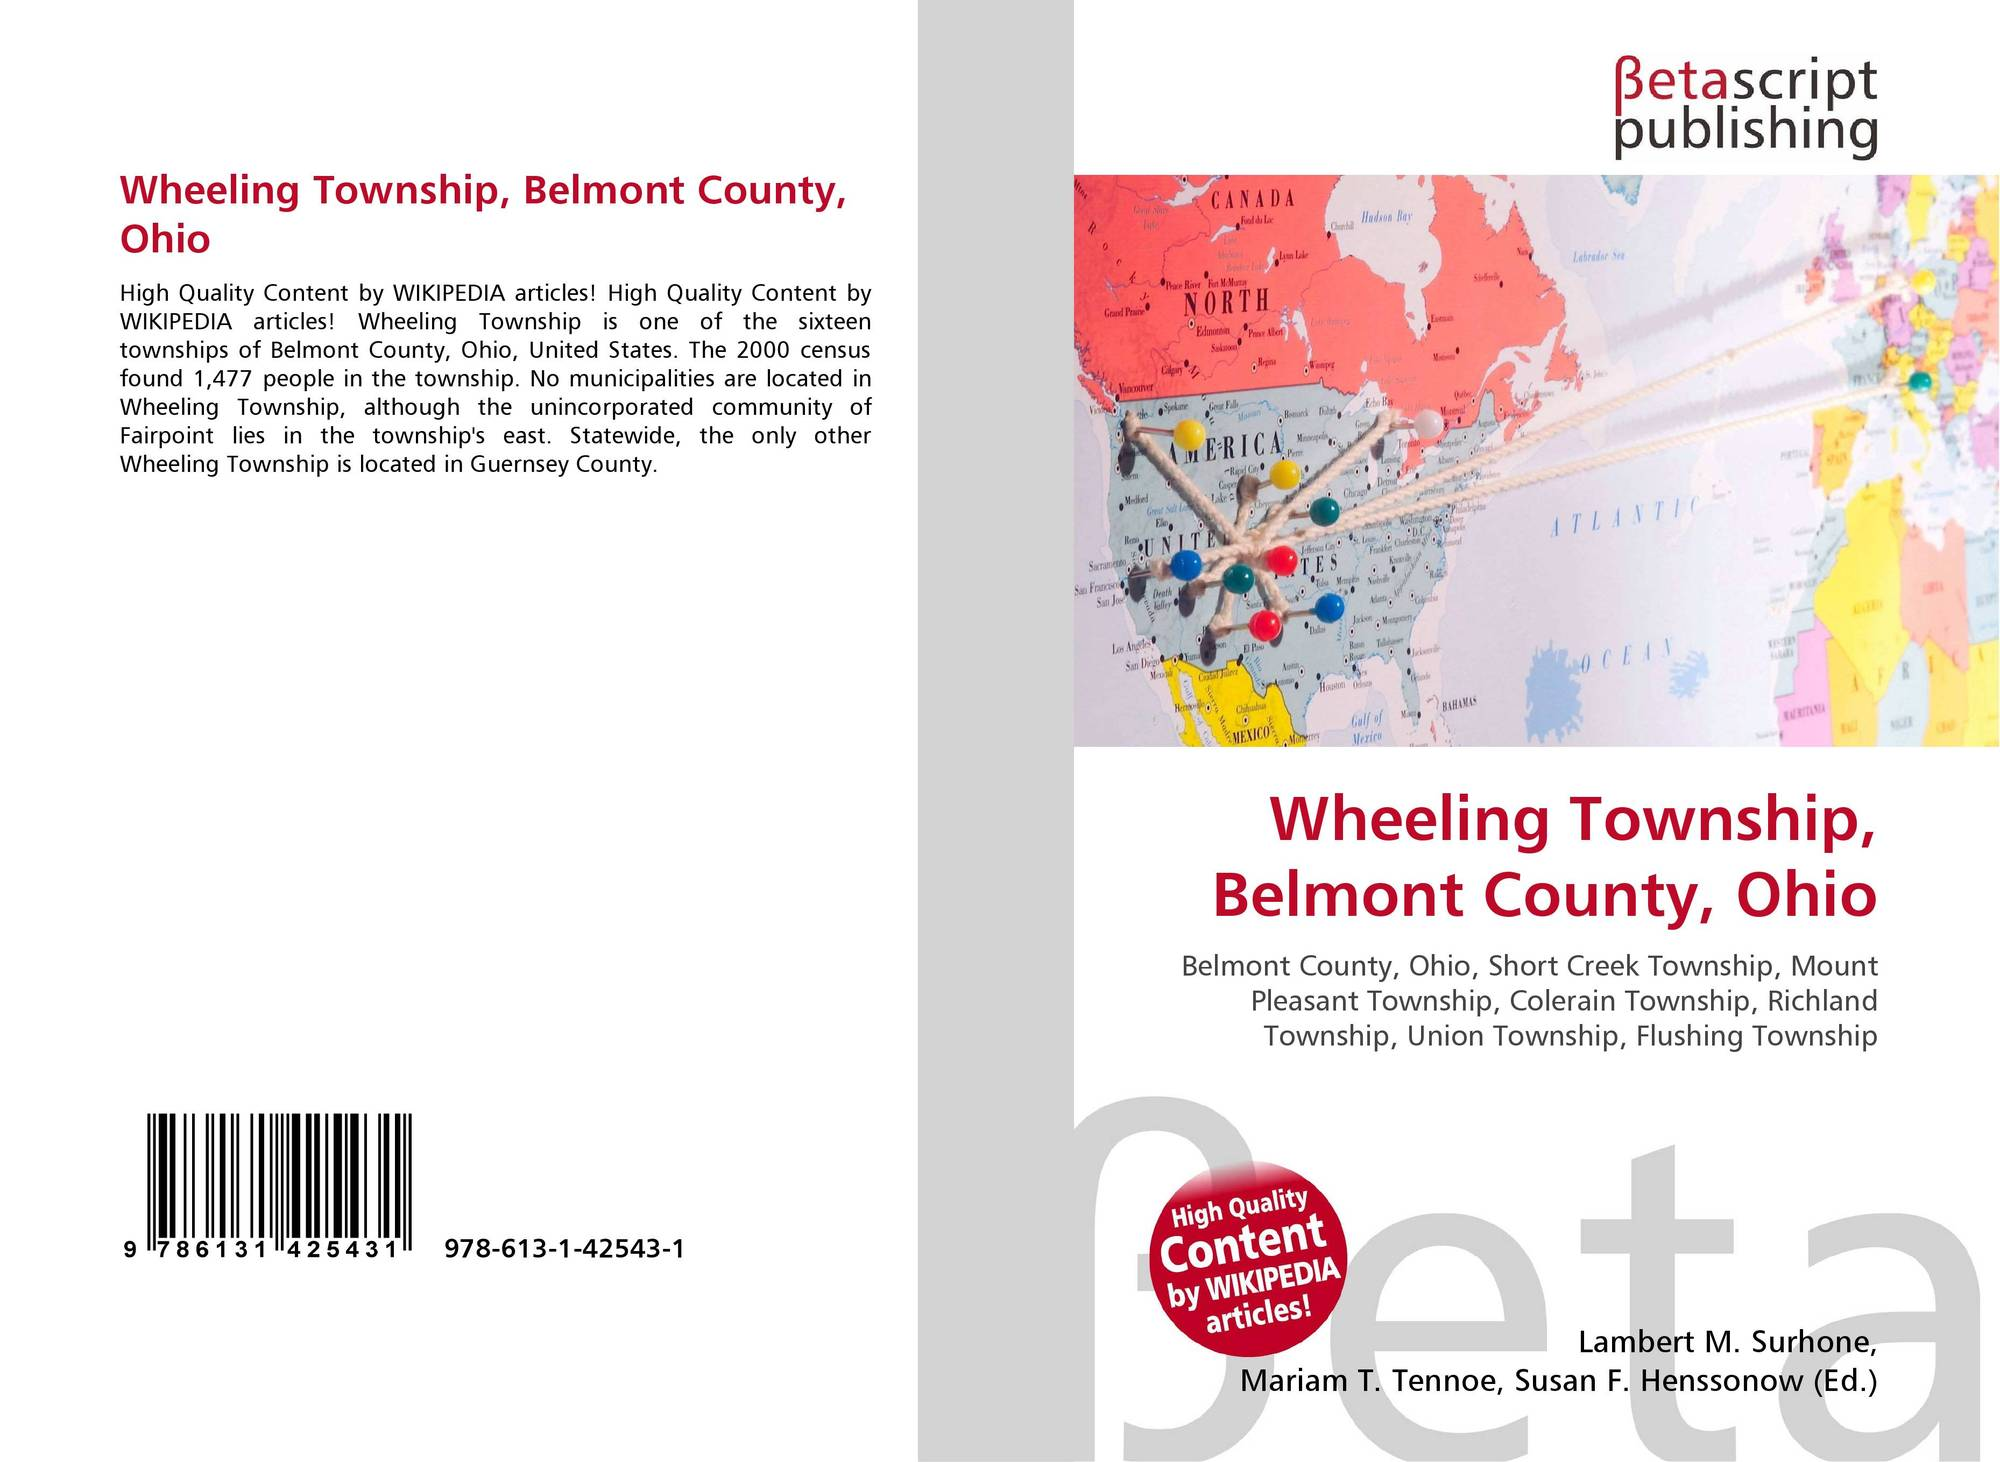 Ohio belmont county fairpoint - Bookcover Of Wheeling Township Belmont County Ohio